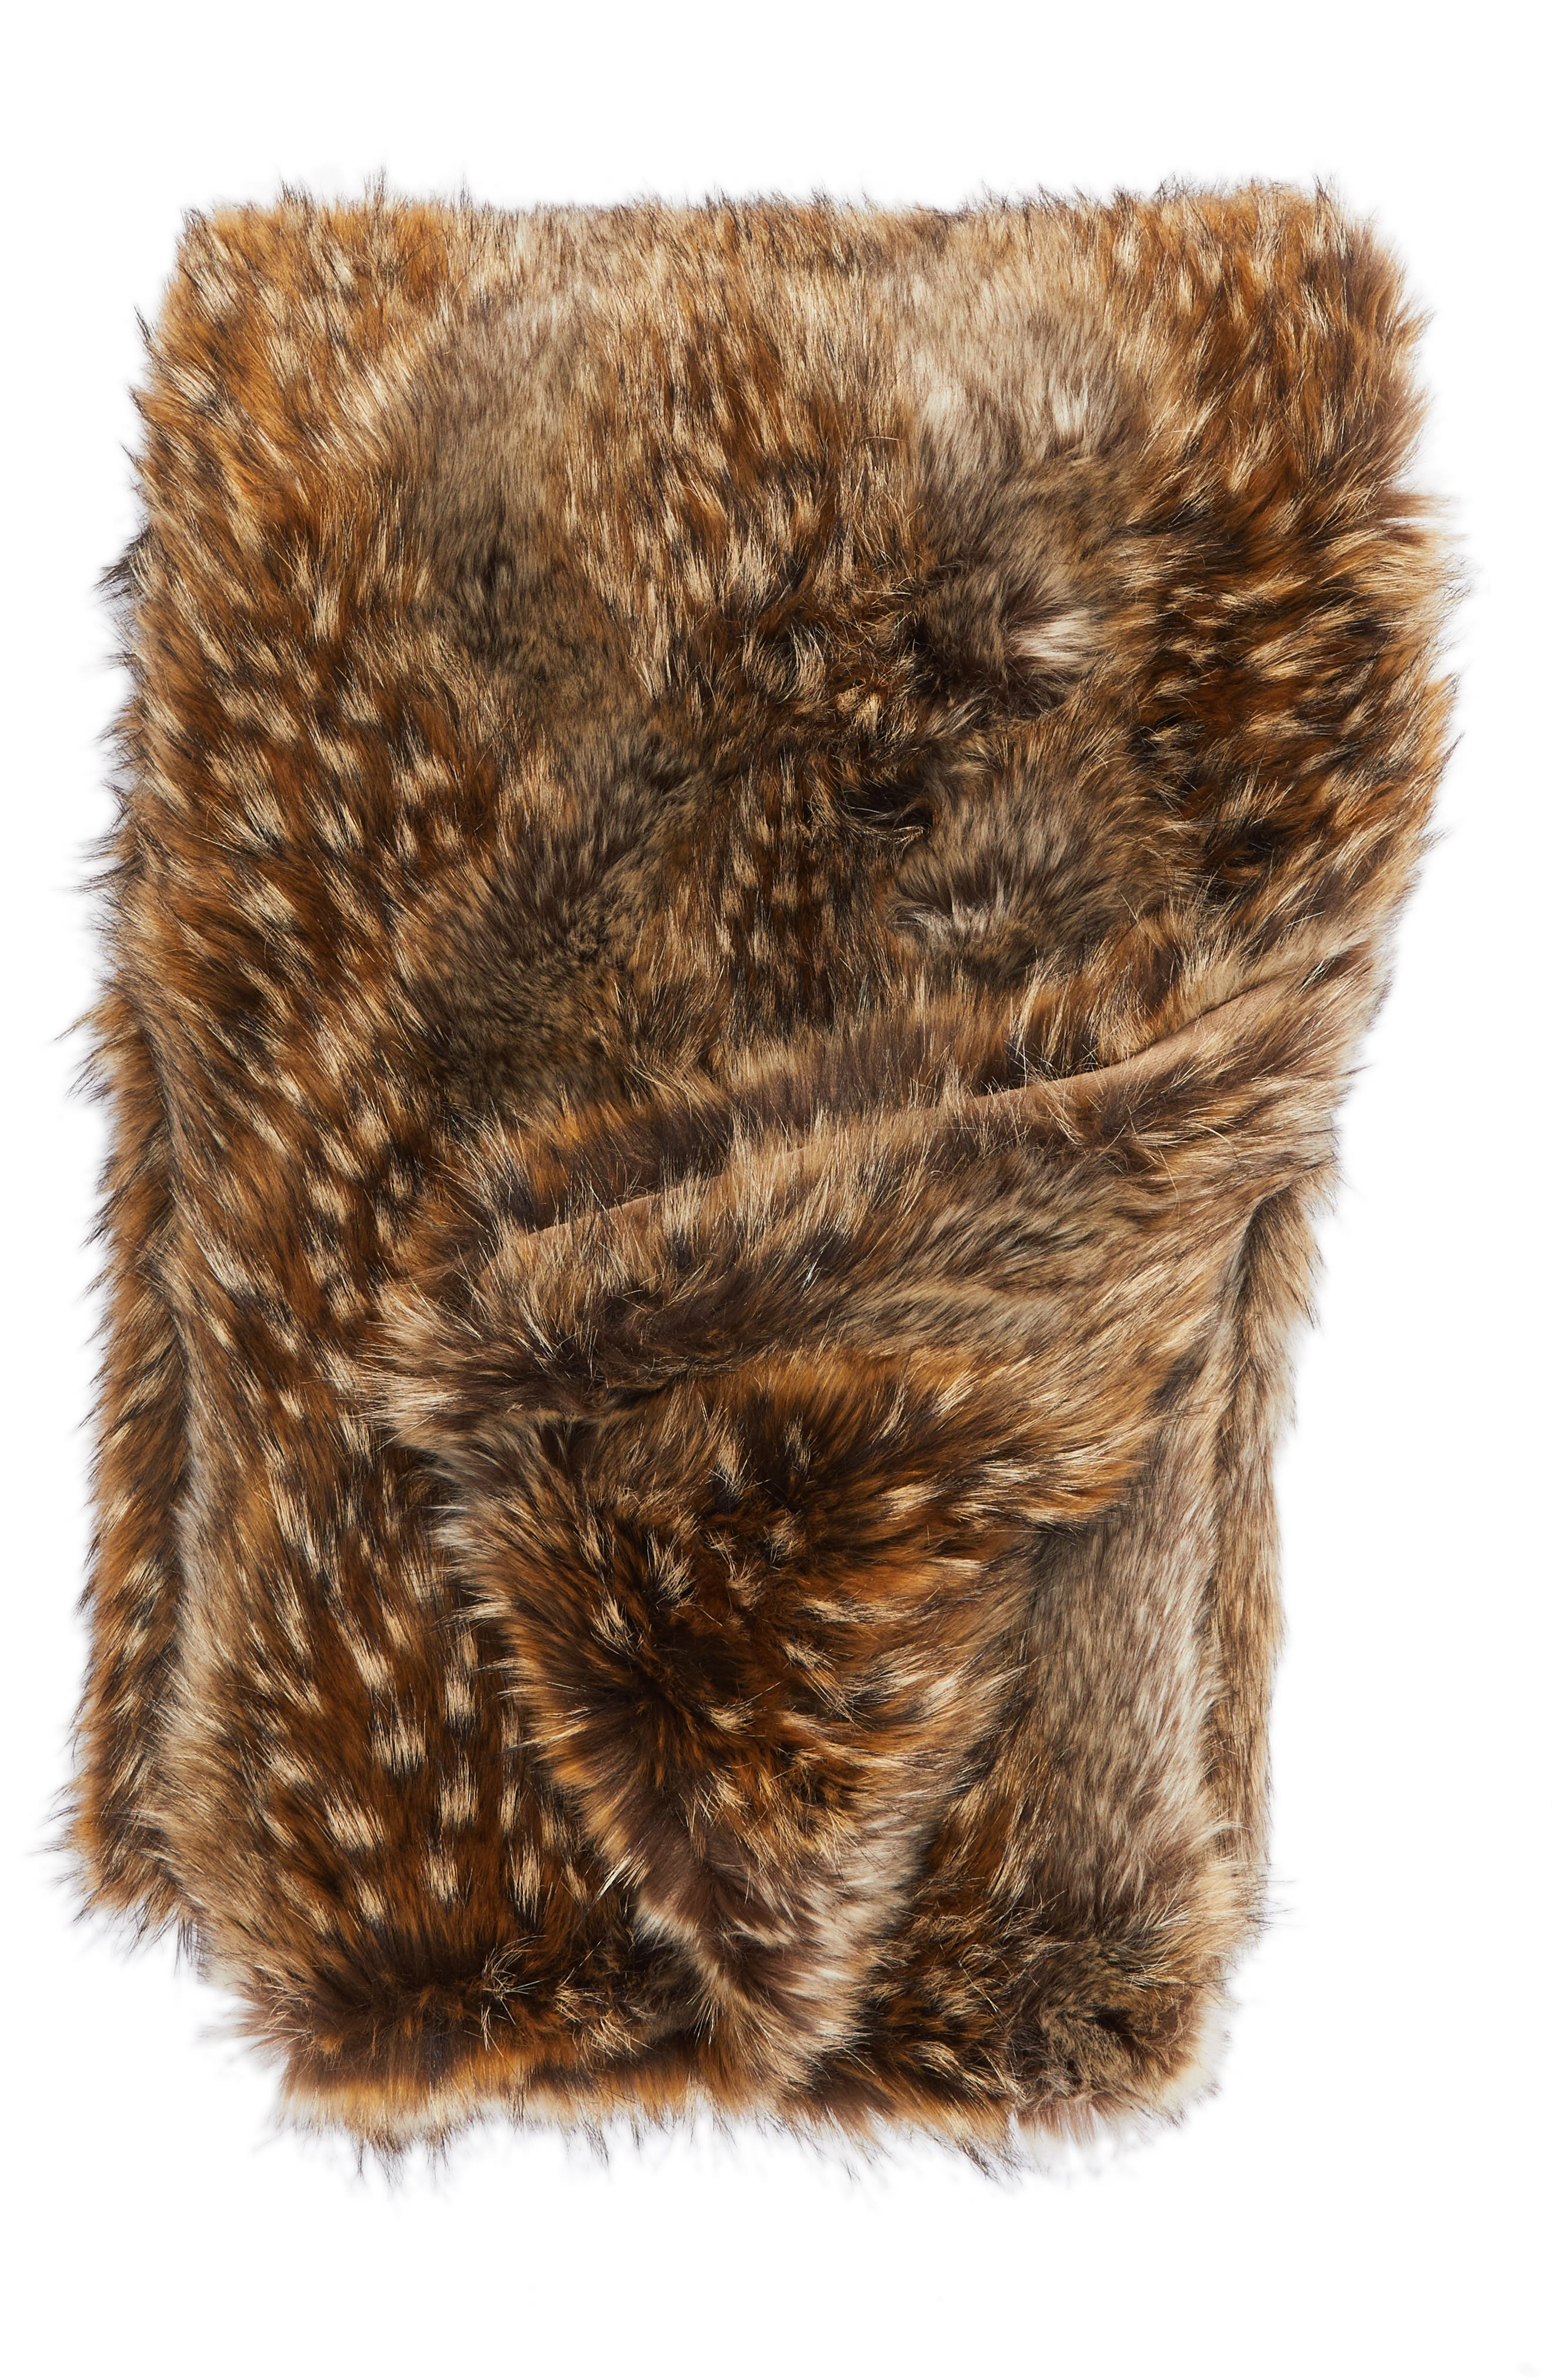 main image nordstrom at home fox faux fur throw blanket - Faux Fur Throws